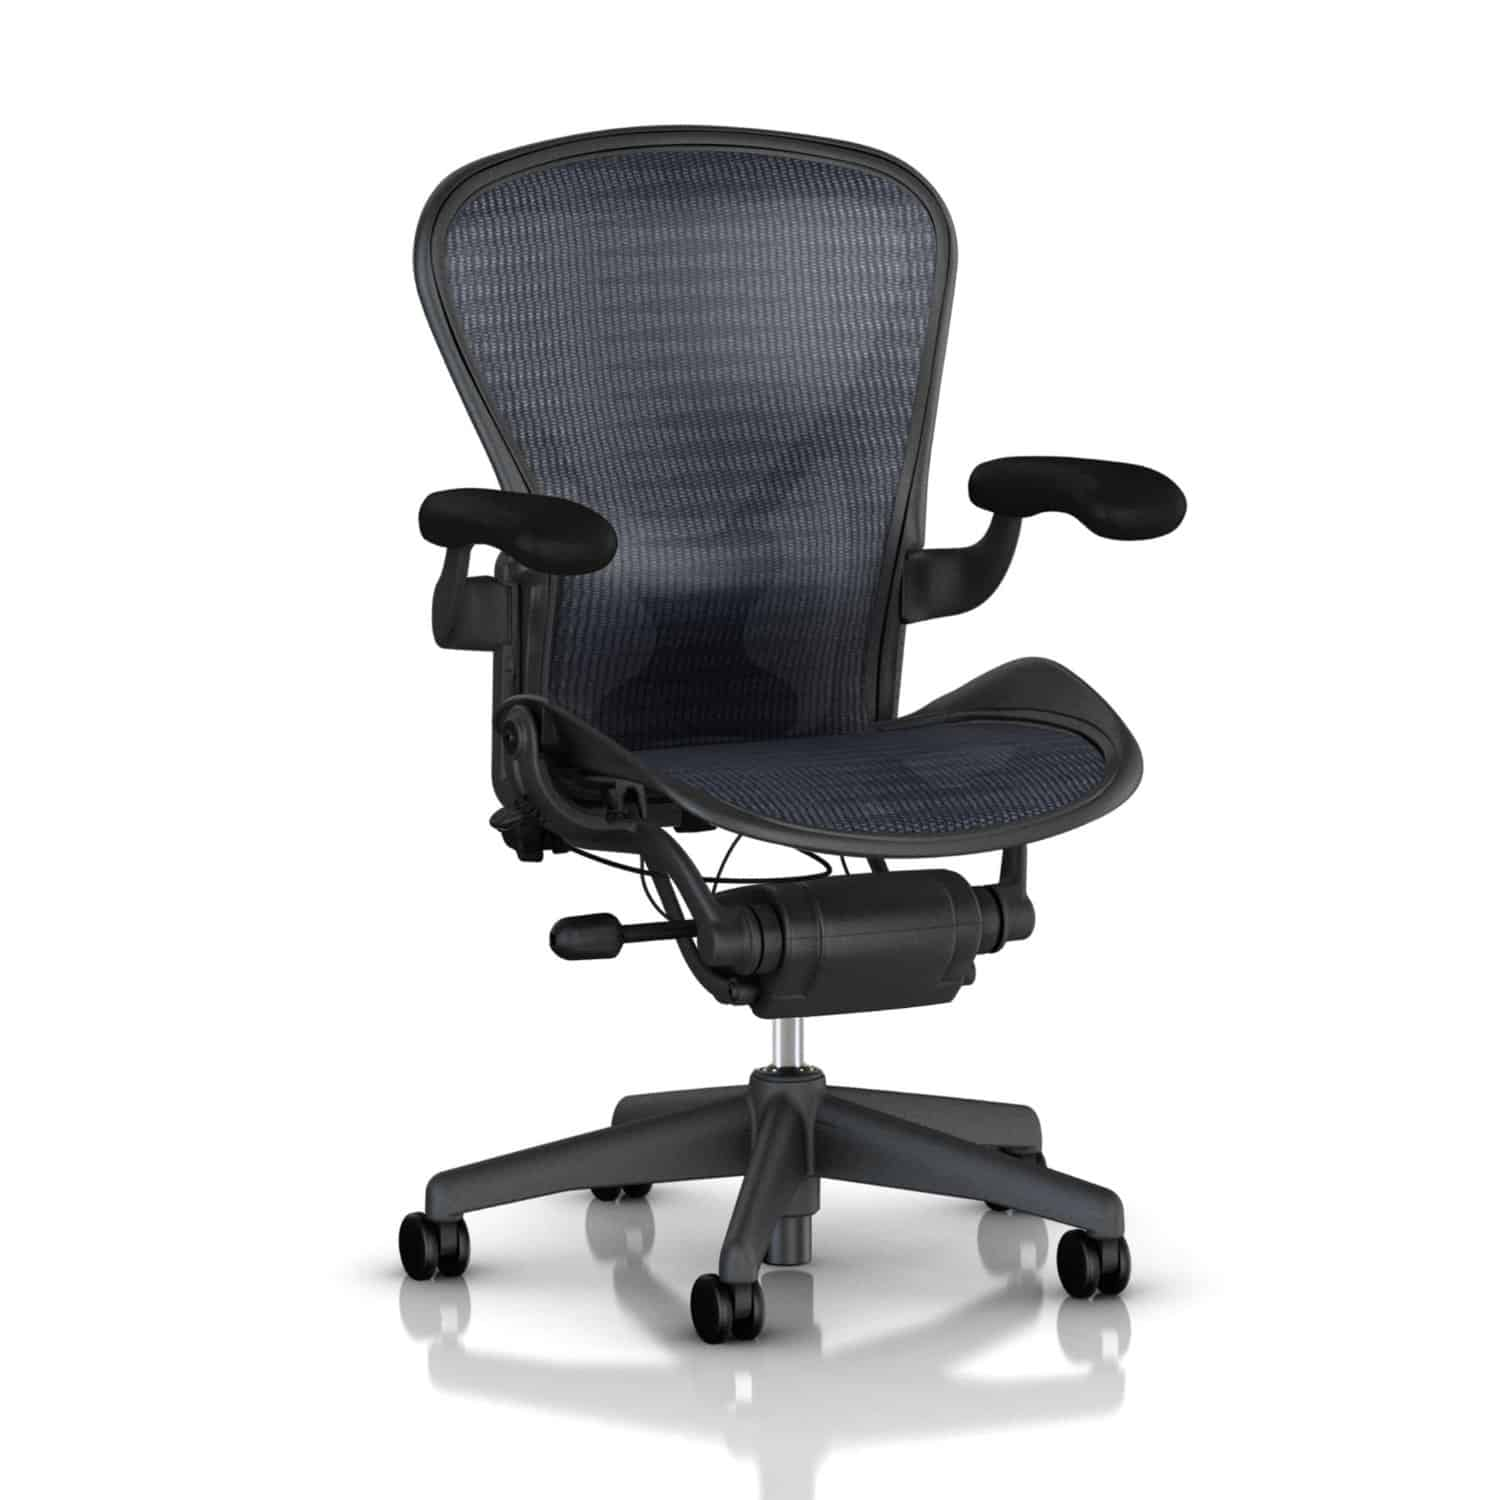 Best office chair 2016 - Aeron Task Chair By Herman Miller